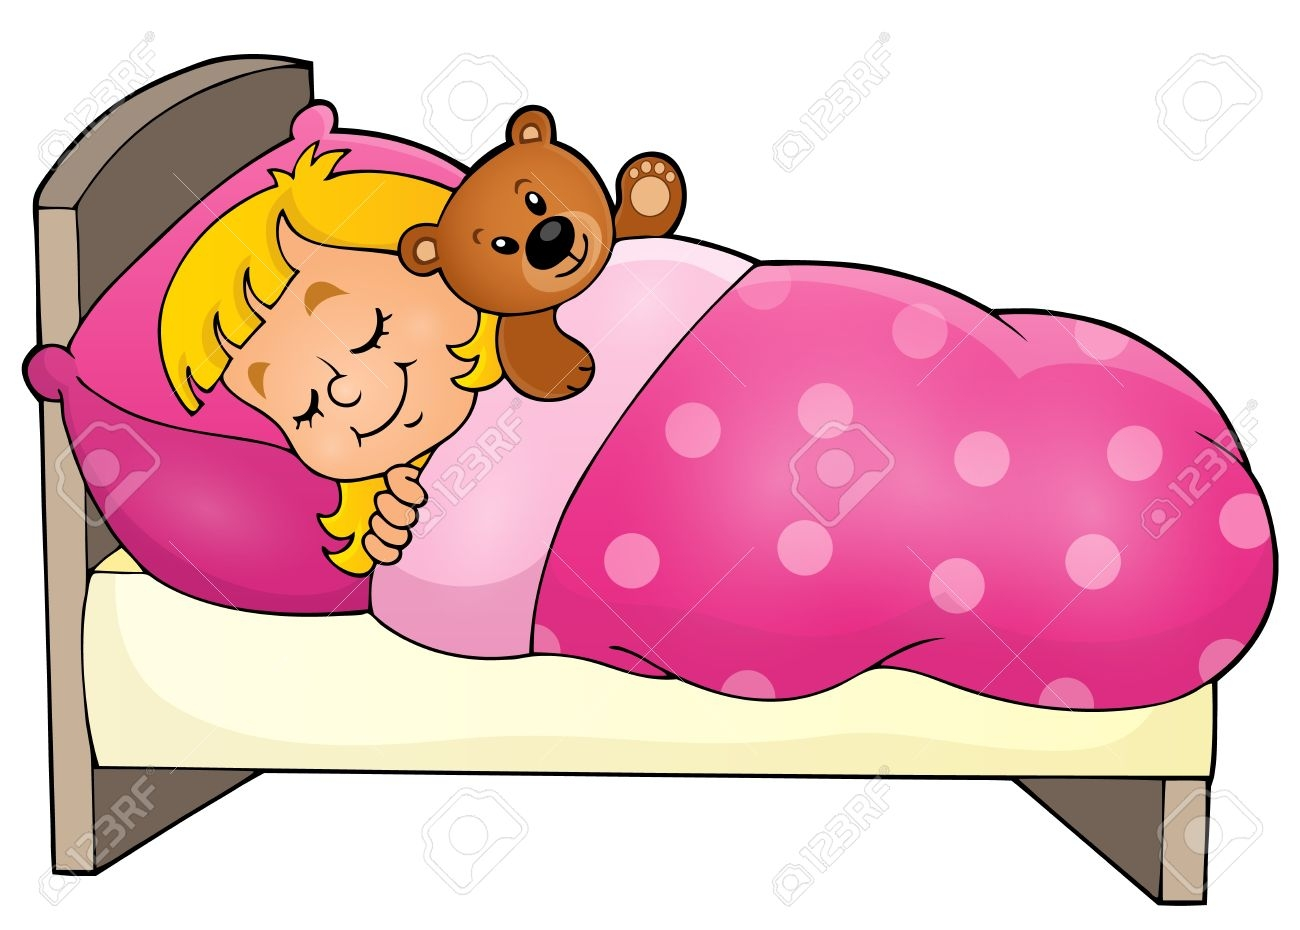 Sleeping children on a couch free clipart jpg free Sleep clipart Beautiful Sleeping Child Theme Image Royalty ... jpg free